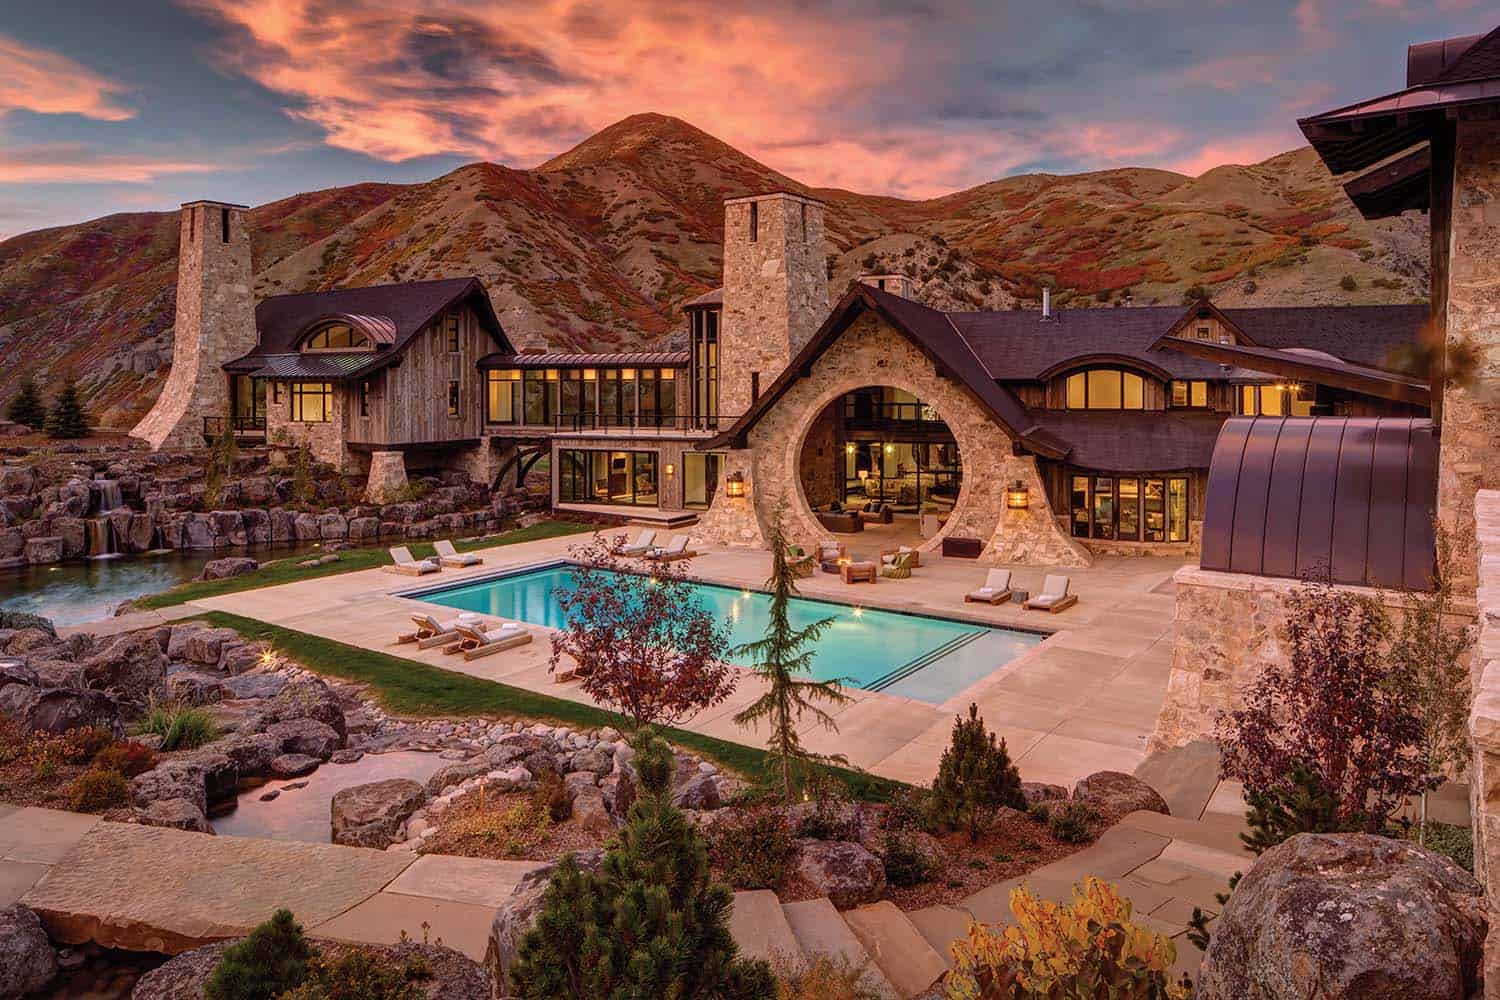 Insane mountain dream home with views of the Wasatch Range, Utah